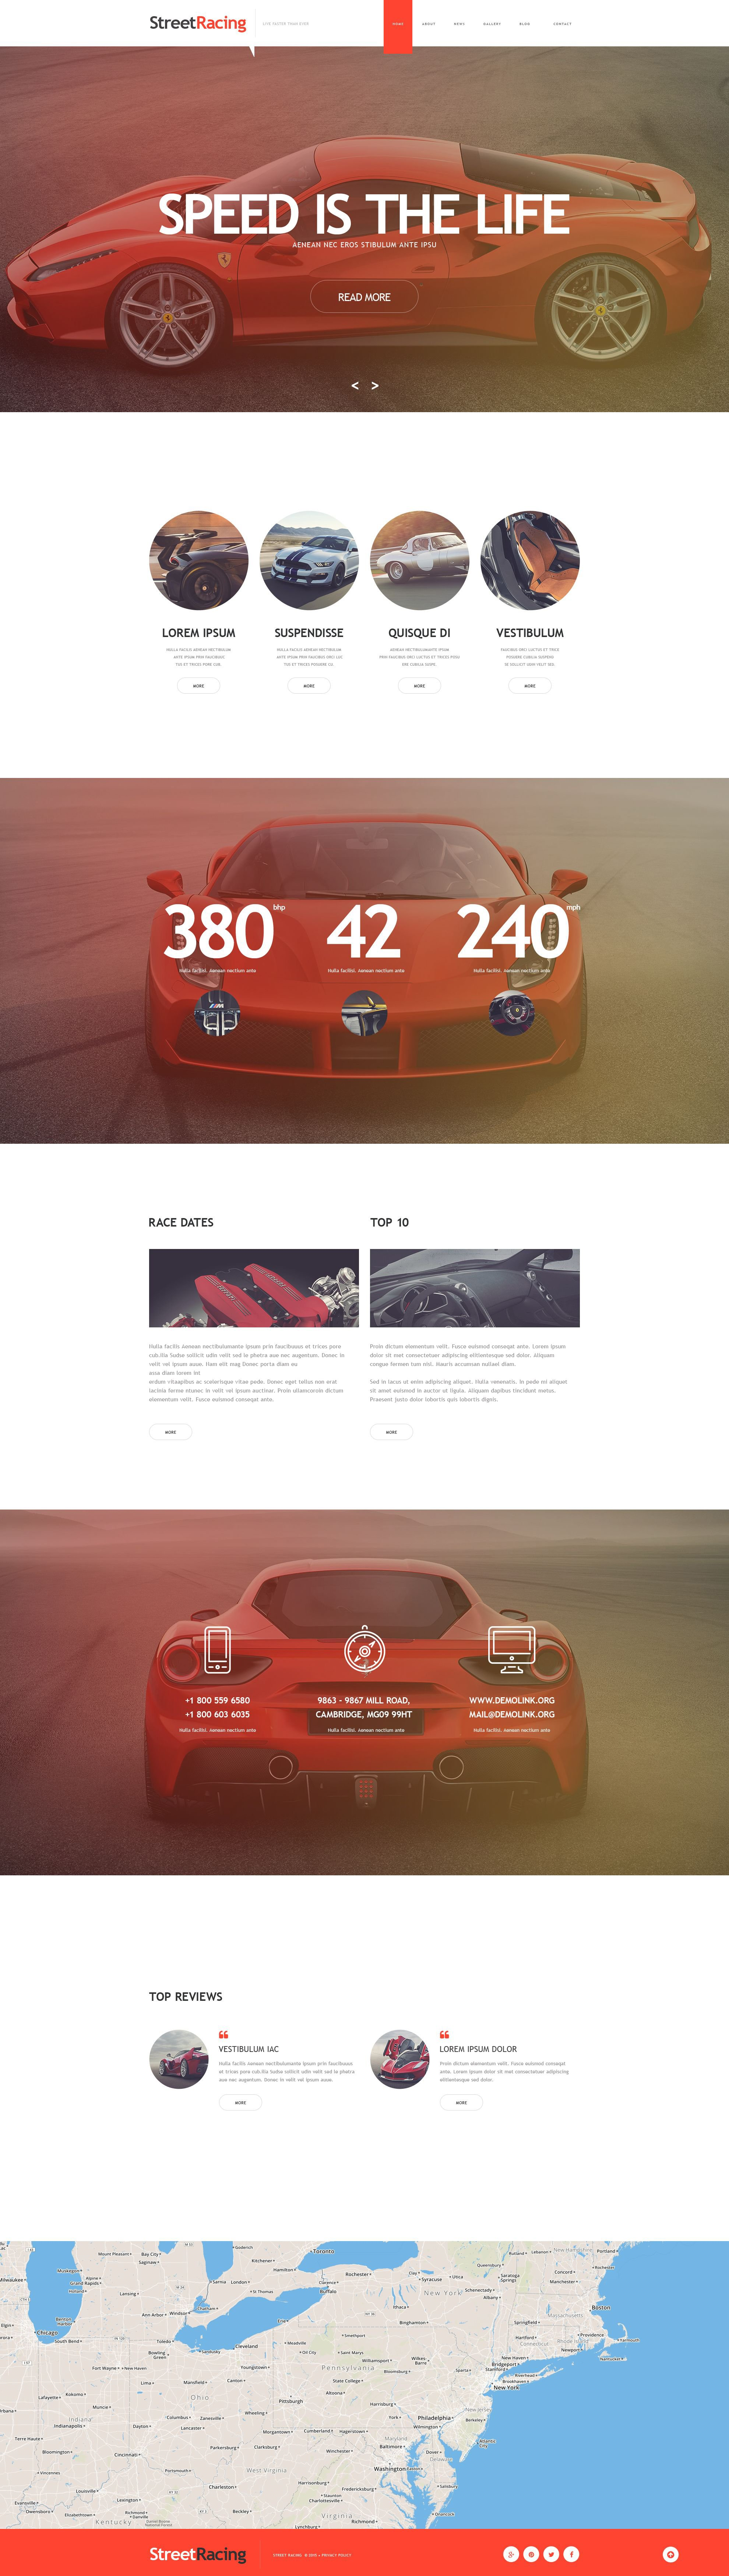 The Street Racer Muse Templates Design 53464, one of the best Muse templates of its kind (cars, most popular), also known as street racer Muse template, car Muse template, cars Muse template, gallery Muse template, forum Muse template, members Muse template, membership Muse template, spares club Muse template, auto Muse template, improvement Muse template, motor Muse template, driving Muse template, off-road Muse template, racing Muse template, driver Muse template, track Muse template, race Muse template, urban Muse template, freeway Muse template, highway Muse template, road Muse template, black forum Muse template, mail Muse template, us Muse template, about Muse template, the club Muse template, news Muse template, latest video Muse template, top 10 Muse template, racing Muse template, quality Muse template, yellow Muse template, car Muse template, lights and related with street racer, car, cars, gallery, forum, members, membership, spares club, auto, improvement, motor, driving, off-road, racing, driver, track, race, urban, freeway, highway, road, black forum, mail, us, about, the club, news, latest video, top 10, racing, quality, yellow, car, lights, etc.